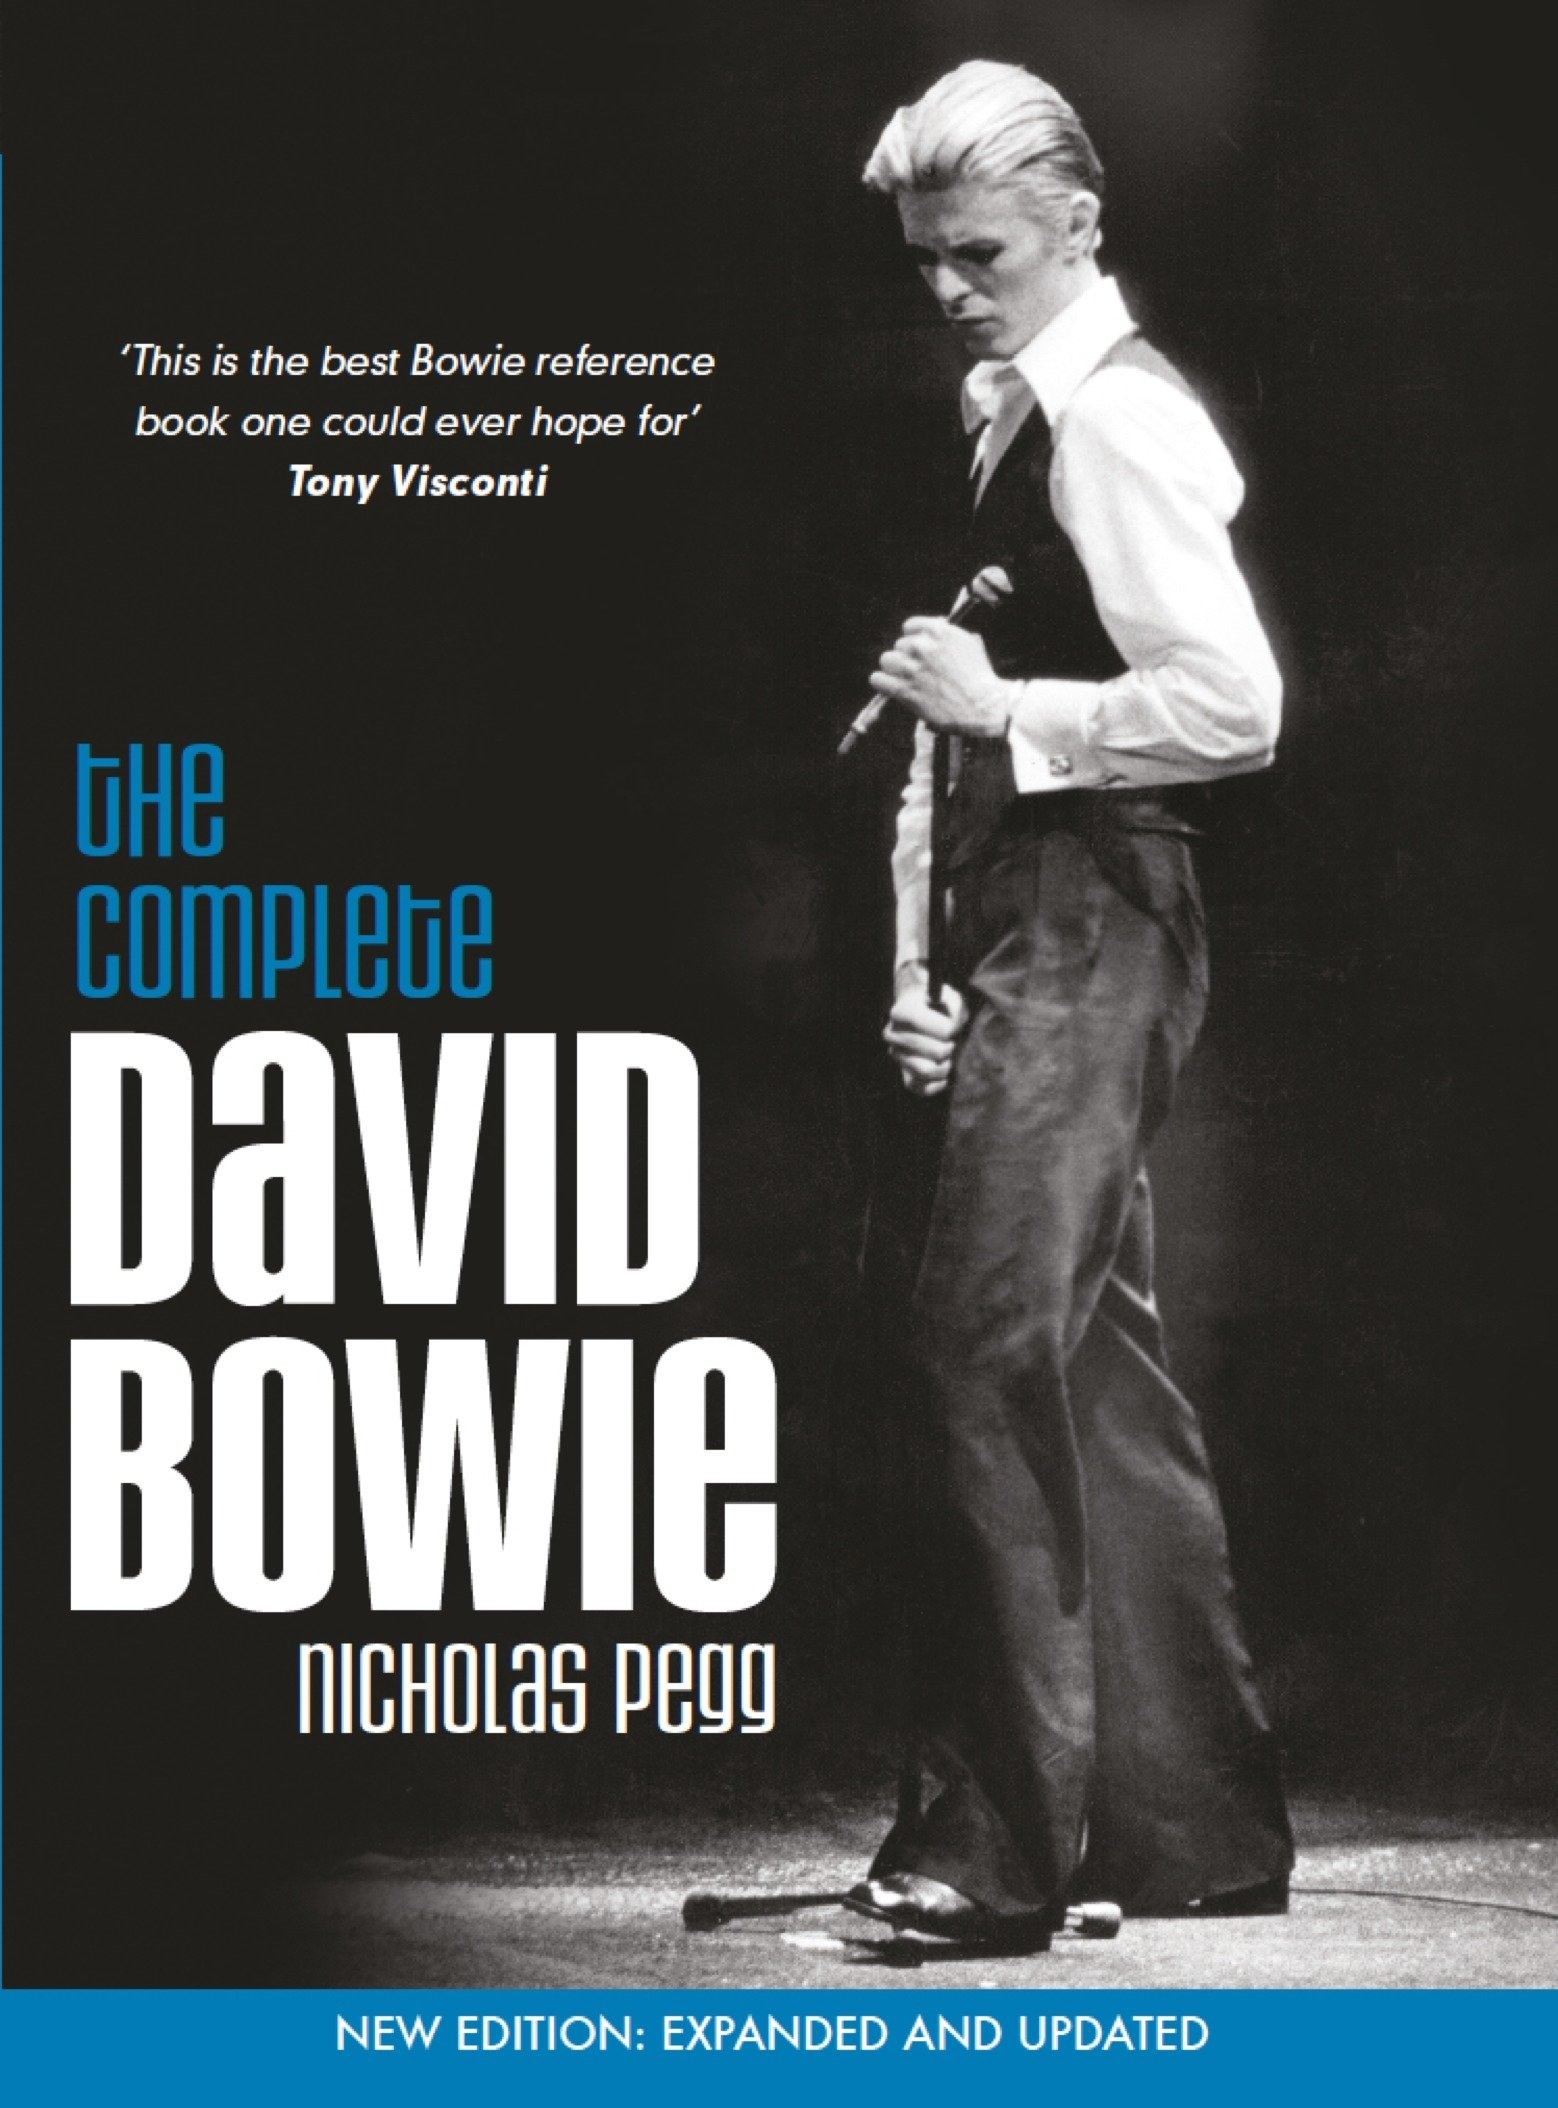 The Complete David Bowie by Nicholas Pegg (Titan Books, Various Editions).